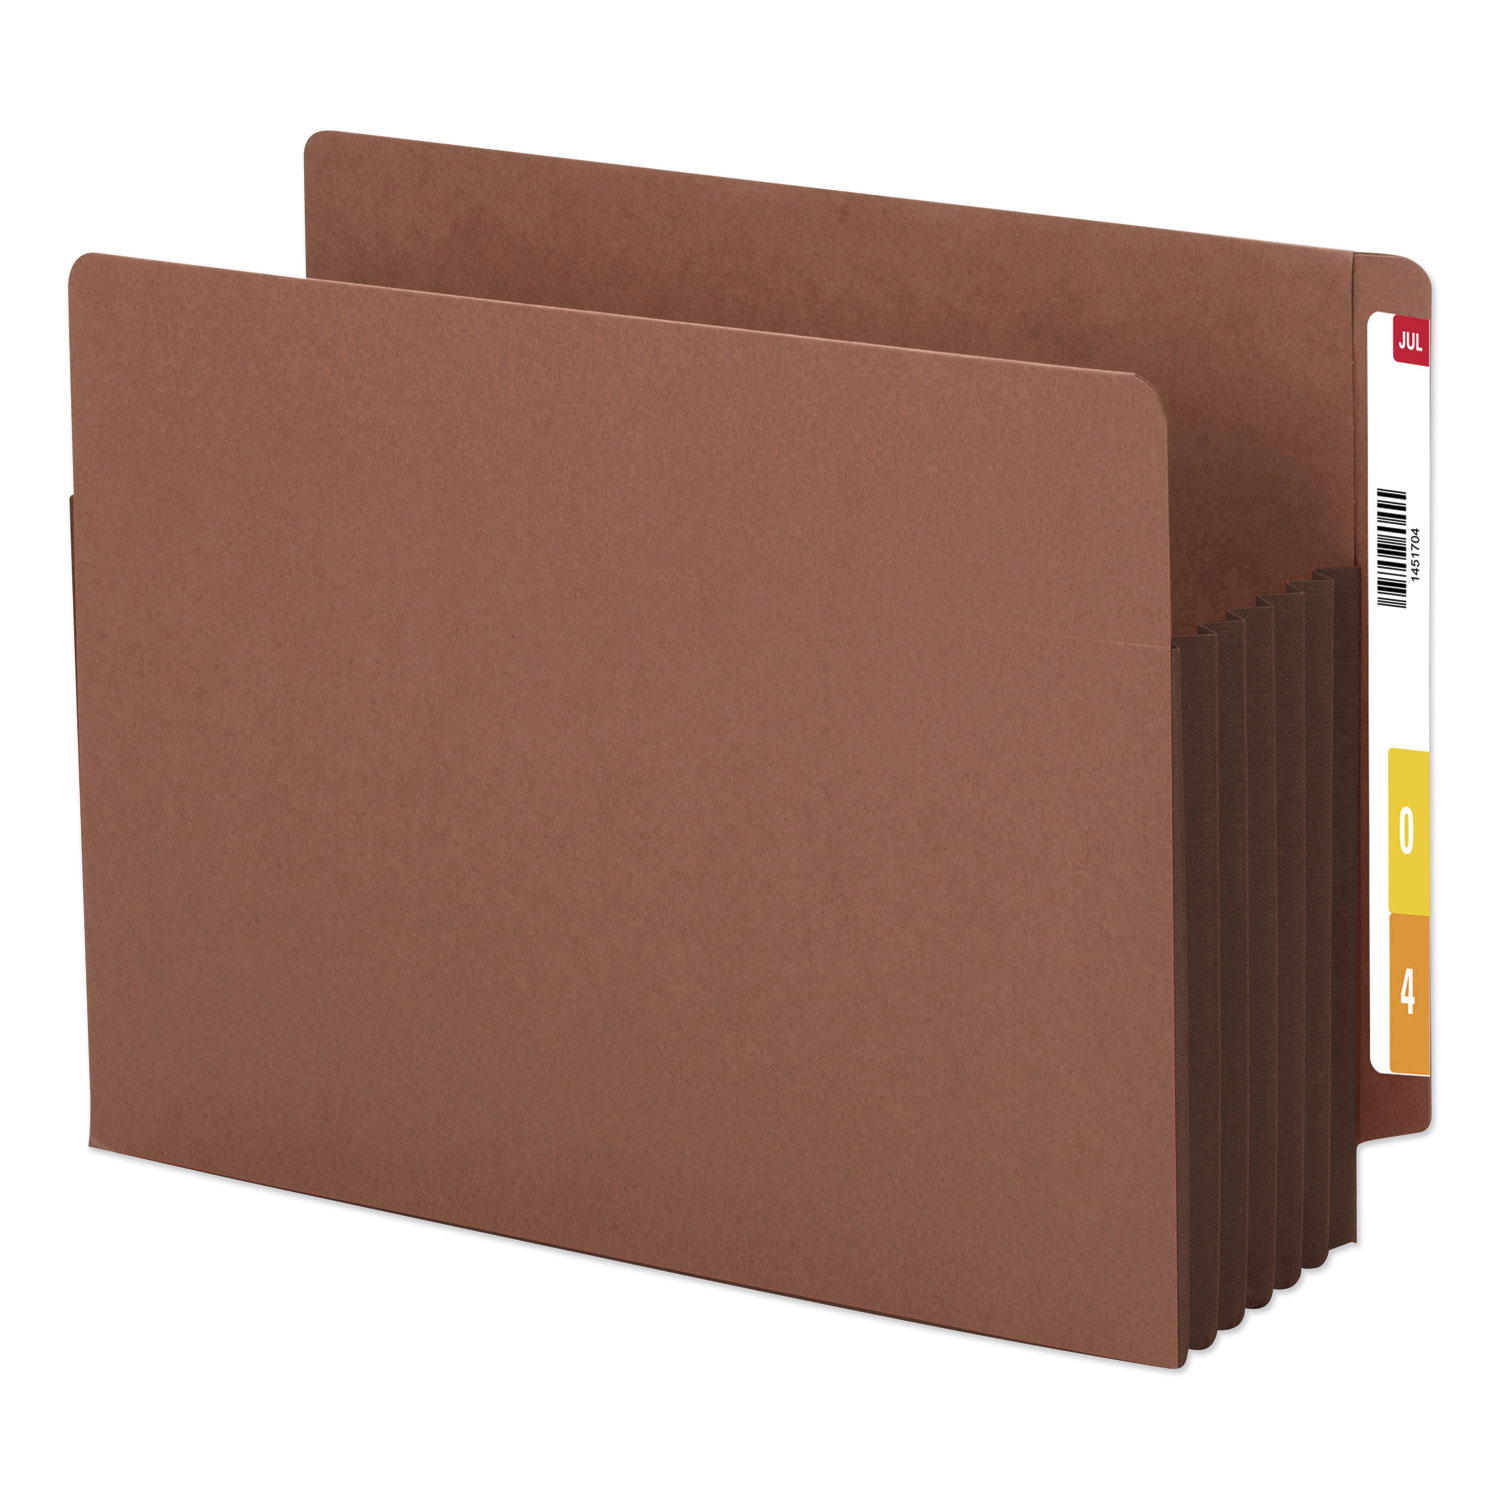 """Redrope Drop-Front End Tab File Pockets w/ Fully Lined Colored Gussets, 5.25"""" Exp, Letter Size, Redrope/Dark Brown, 10/Box"""